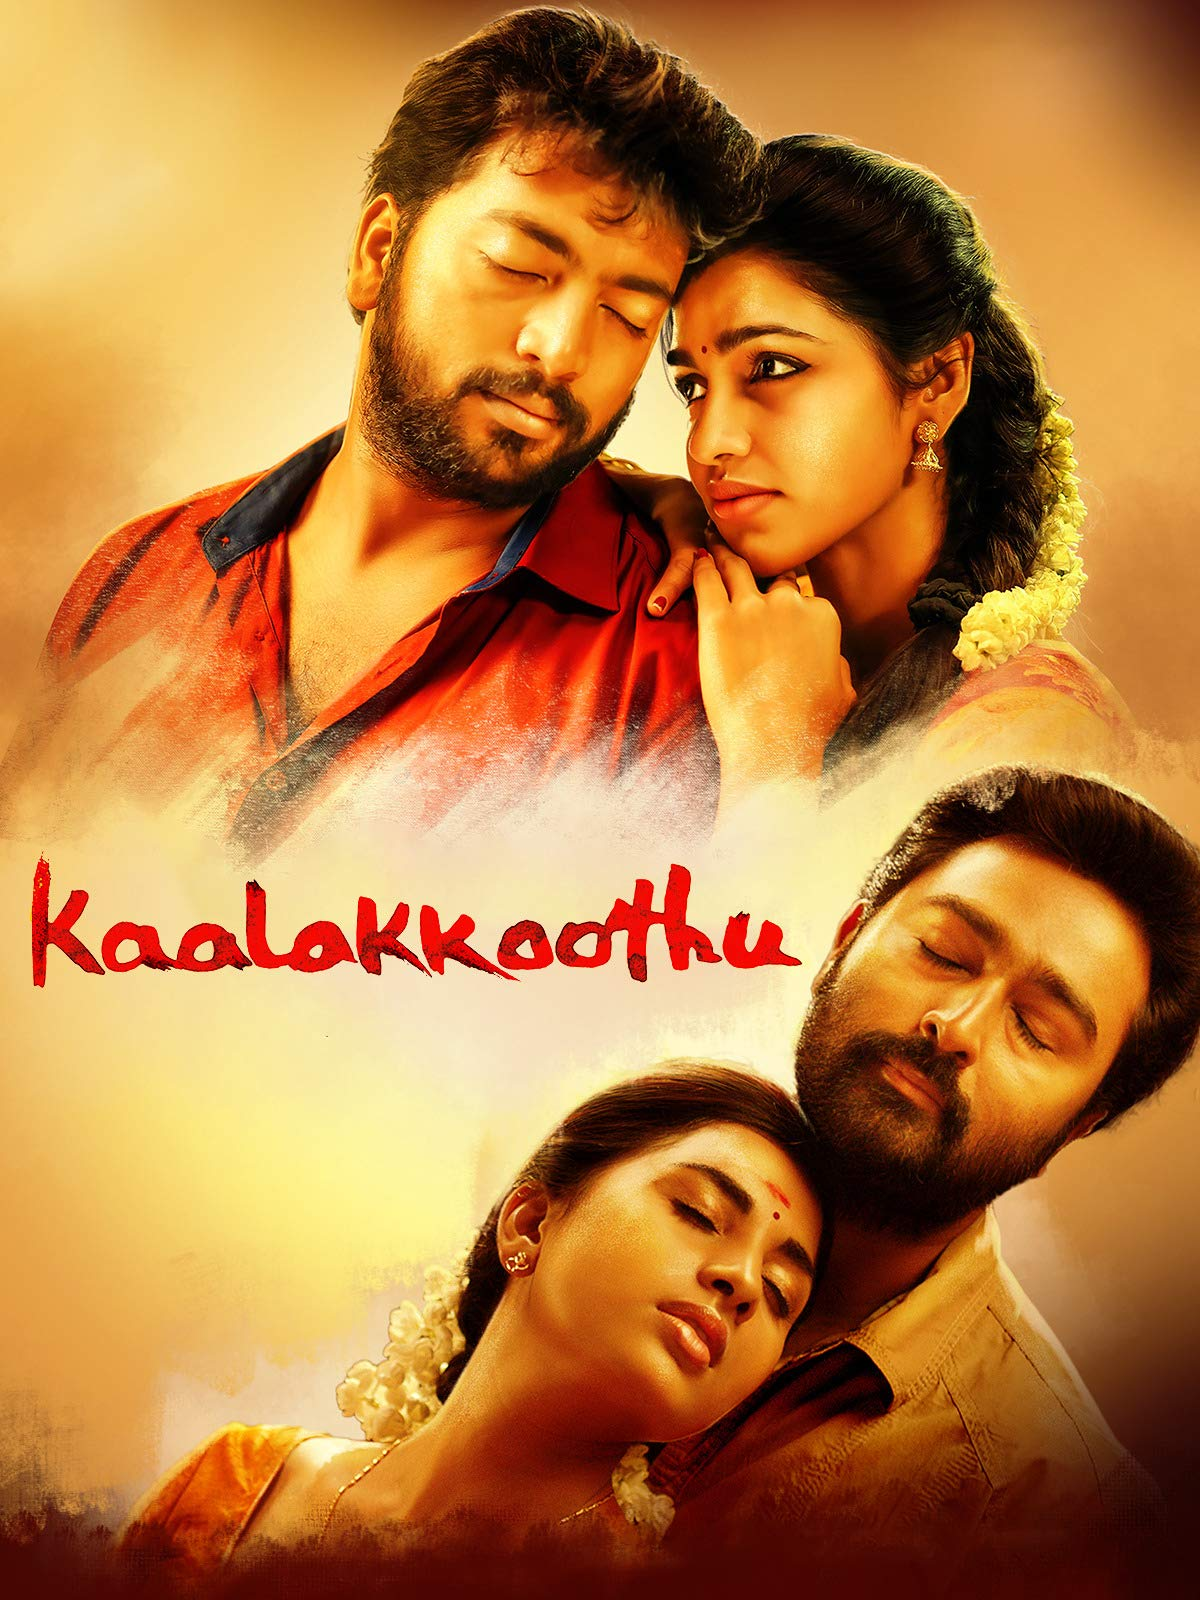 Dosti No.1 (Kaala Koothu) 2020 Hindi Dubbed 480p HDRip x264 350MB